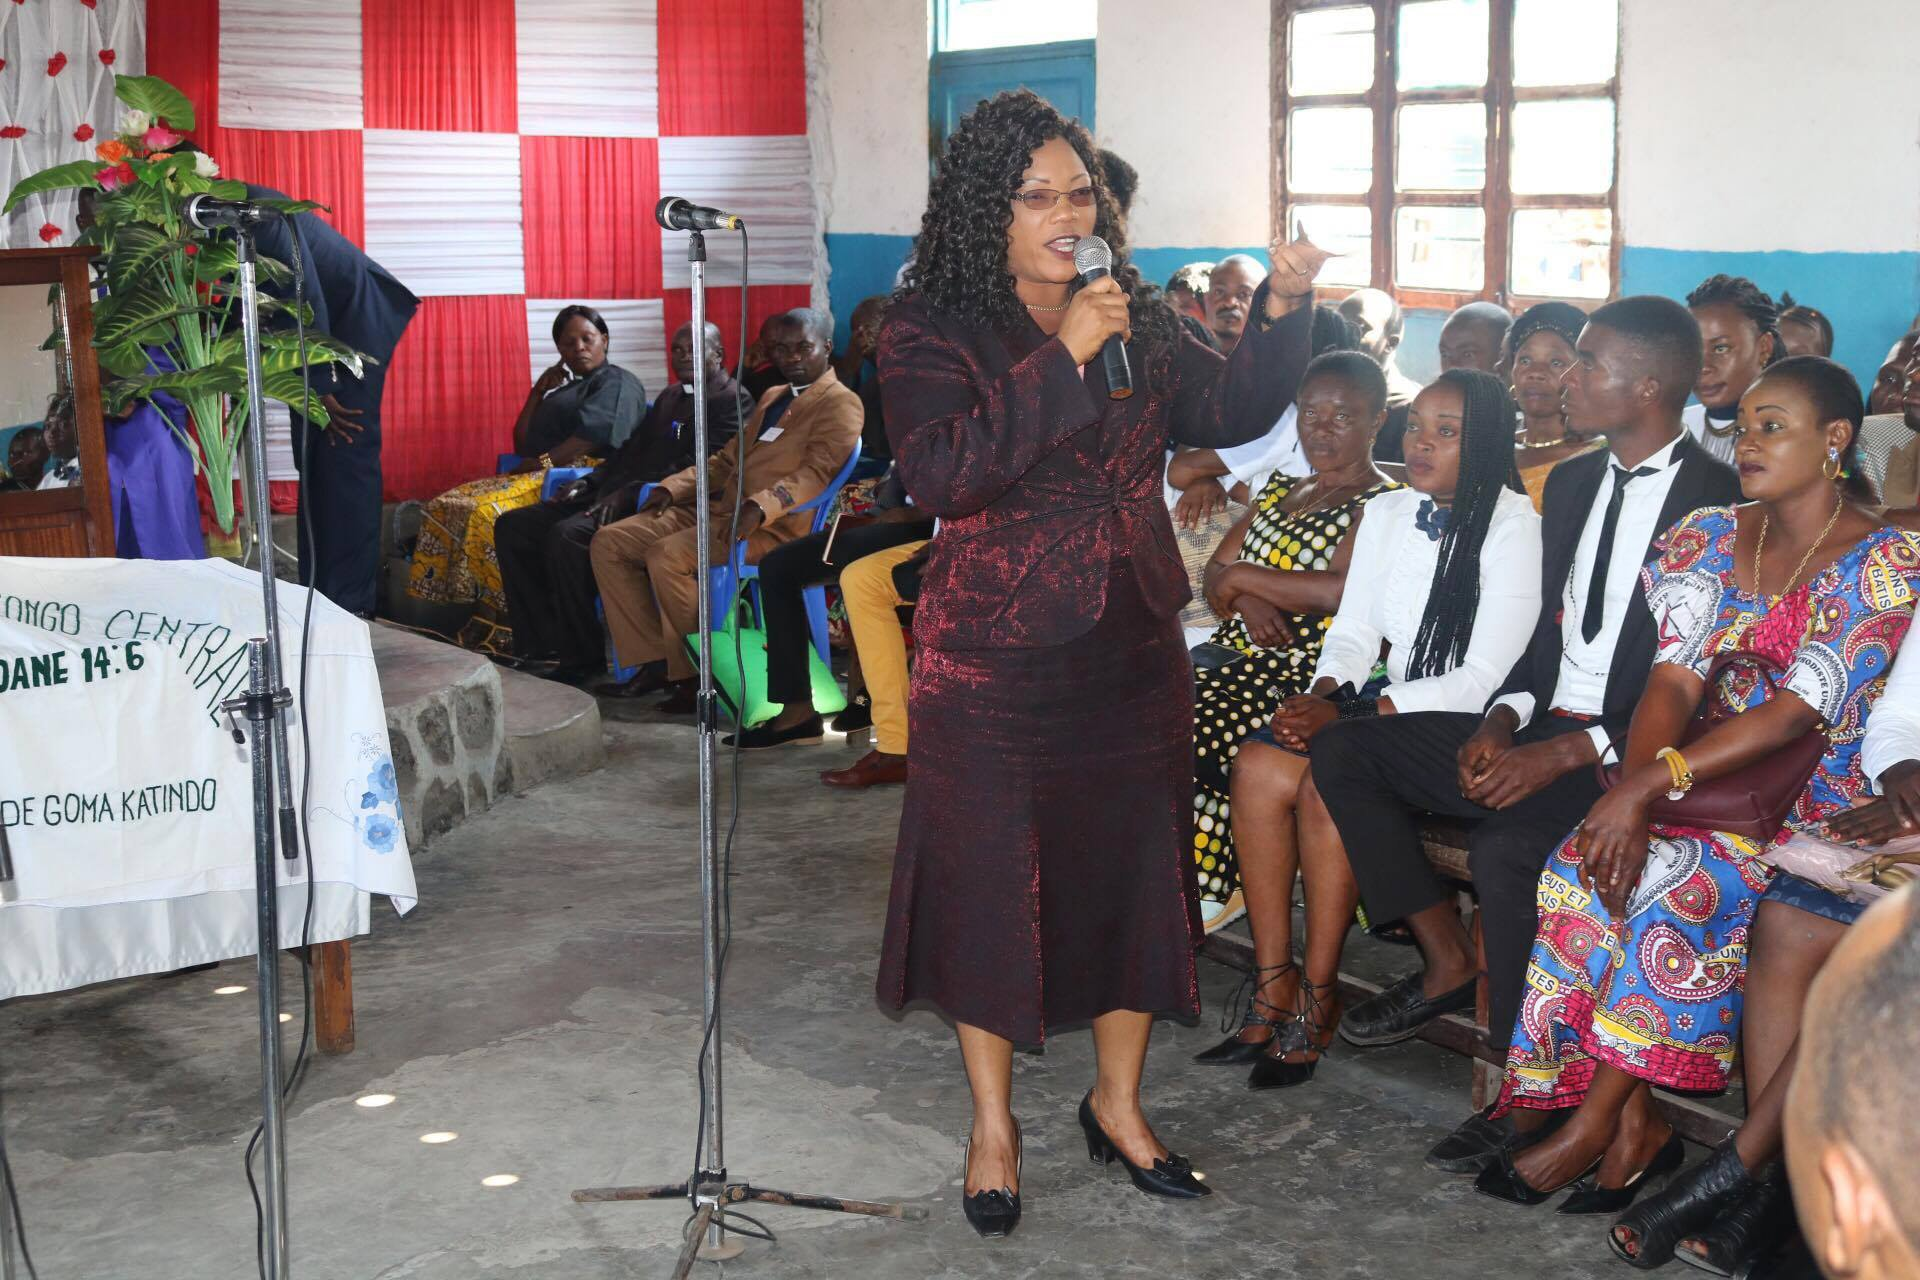 Therese Ndjovu speaks to members of the Amani Local Church at Goma in Kivu about efforts to help widows and children. Photo by Philippe Kituka Lolonga, UMNS.